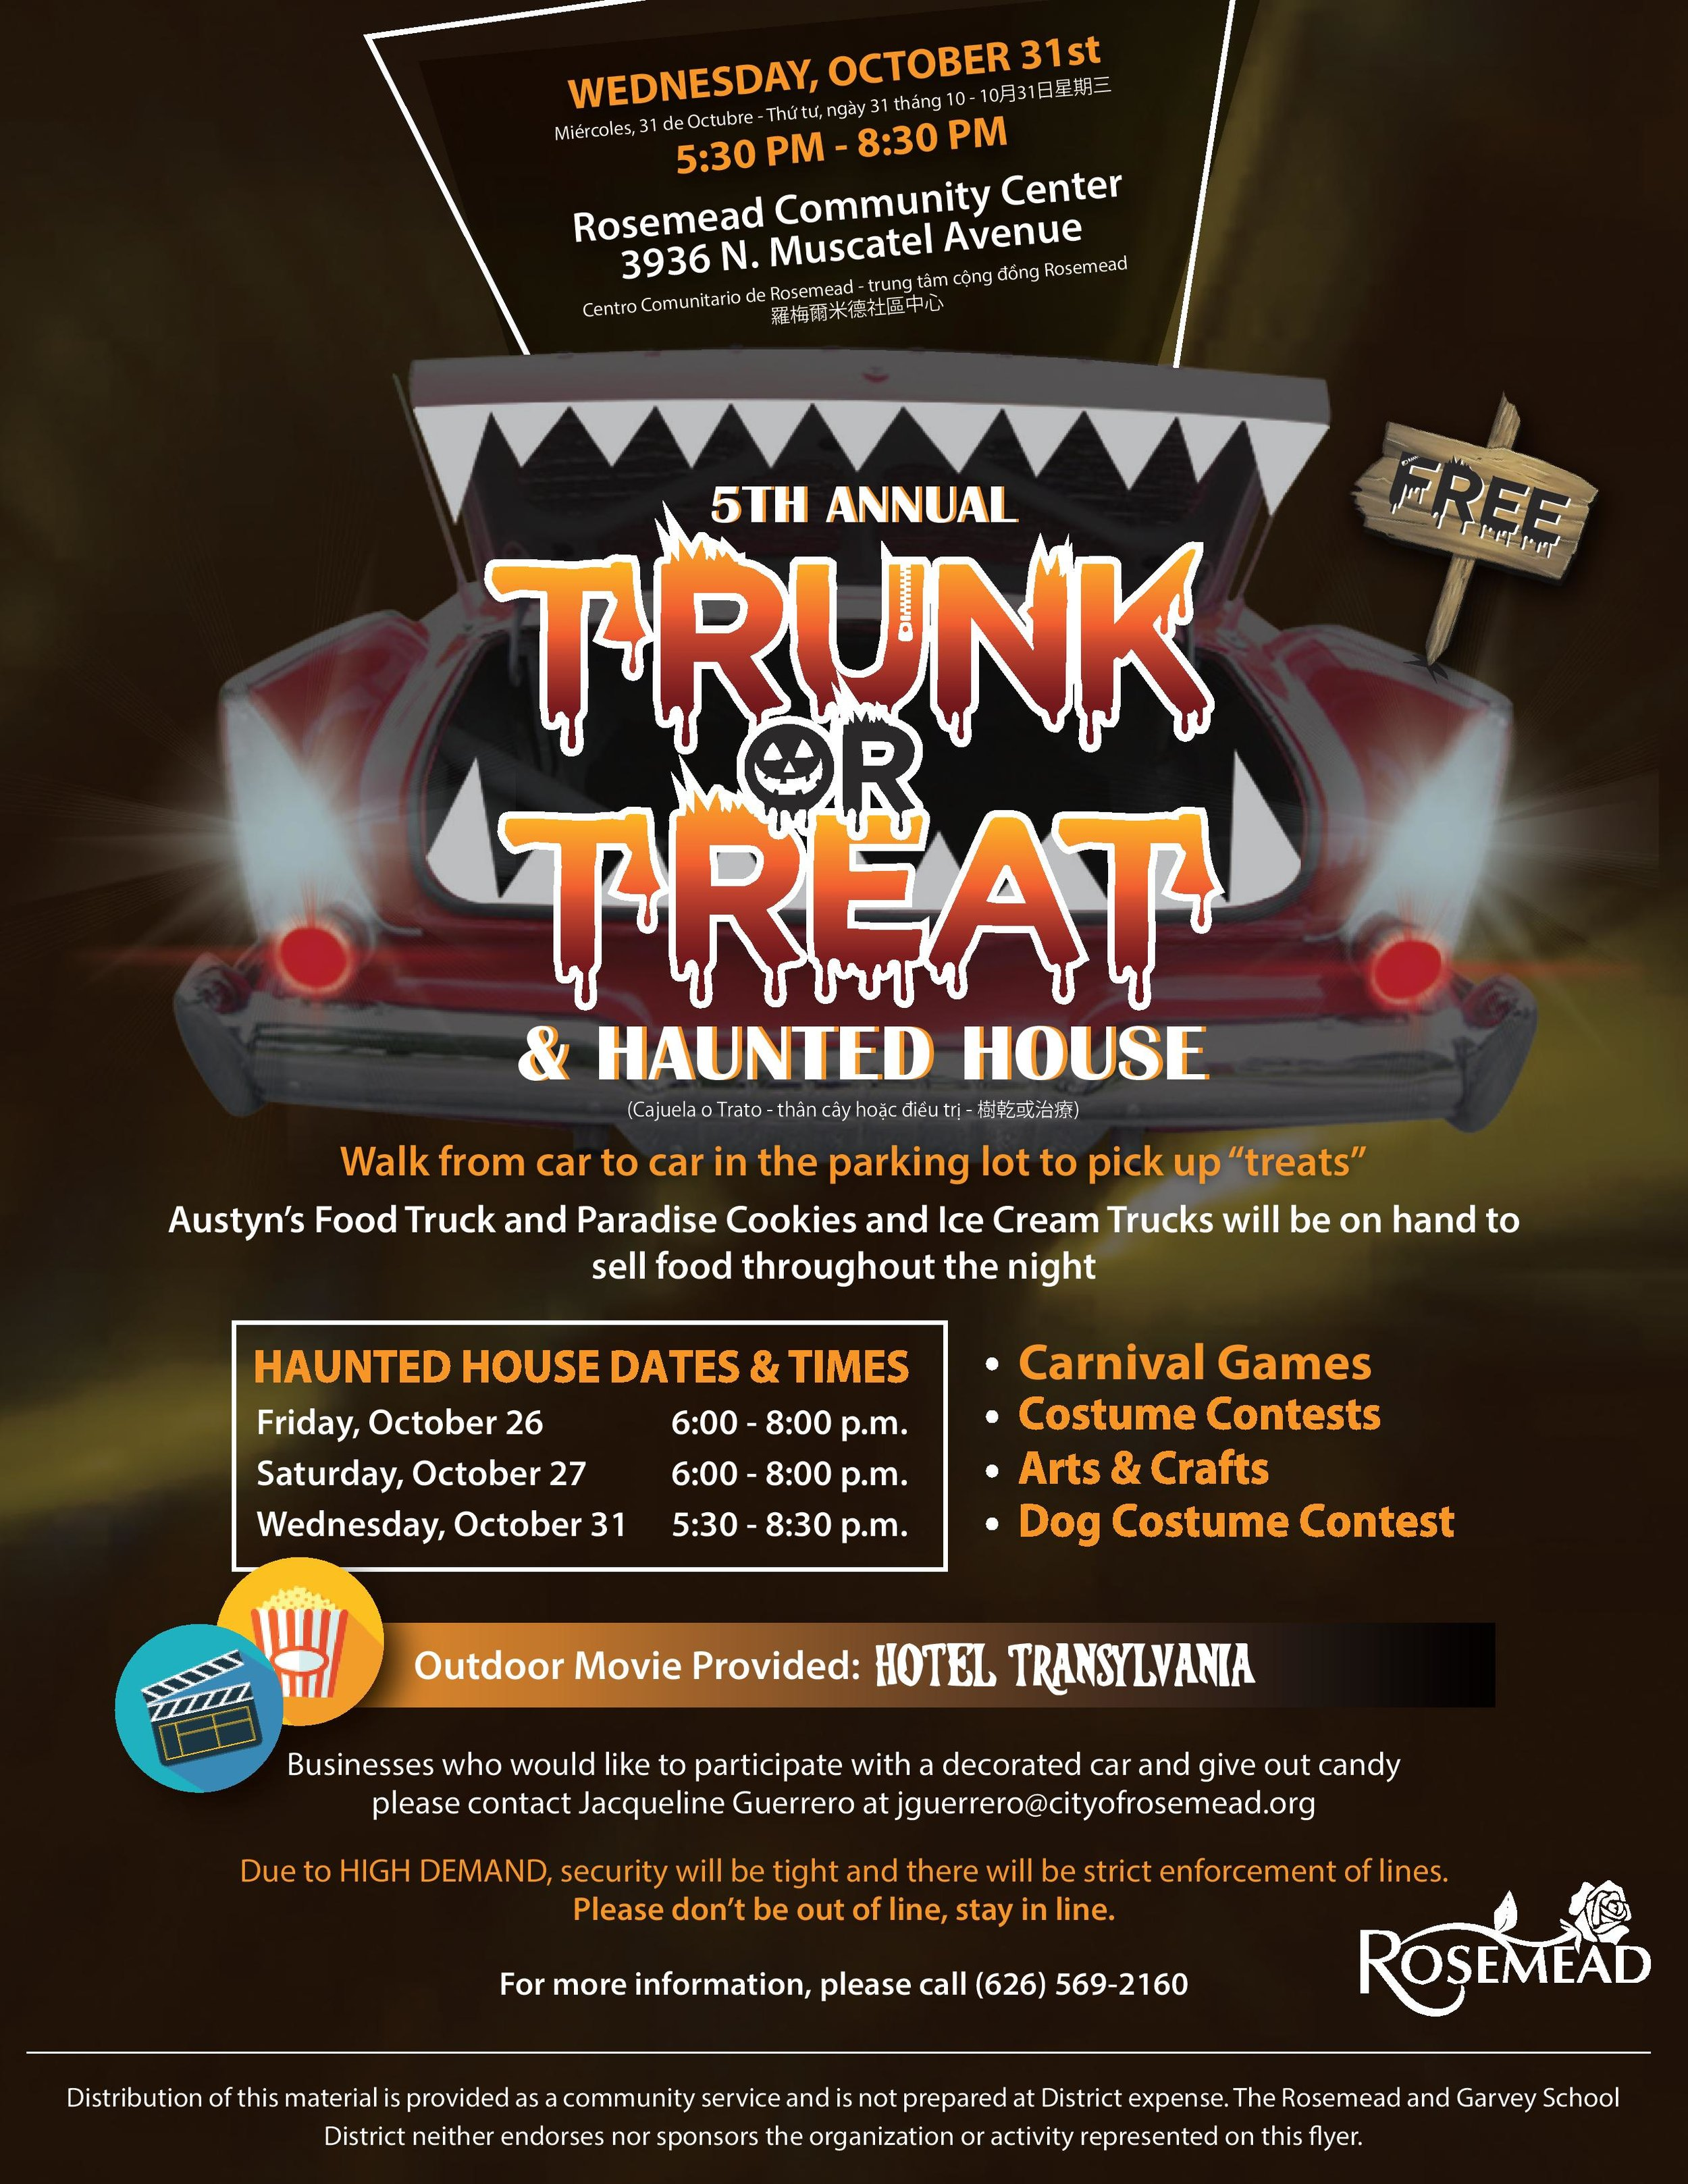 Rosemead's 5th annual trunk or treat & haunted house - October 31st, 2018